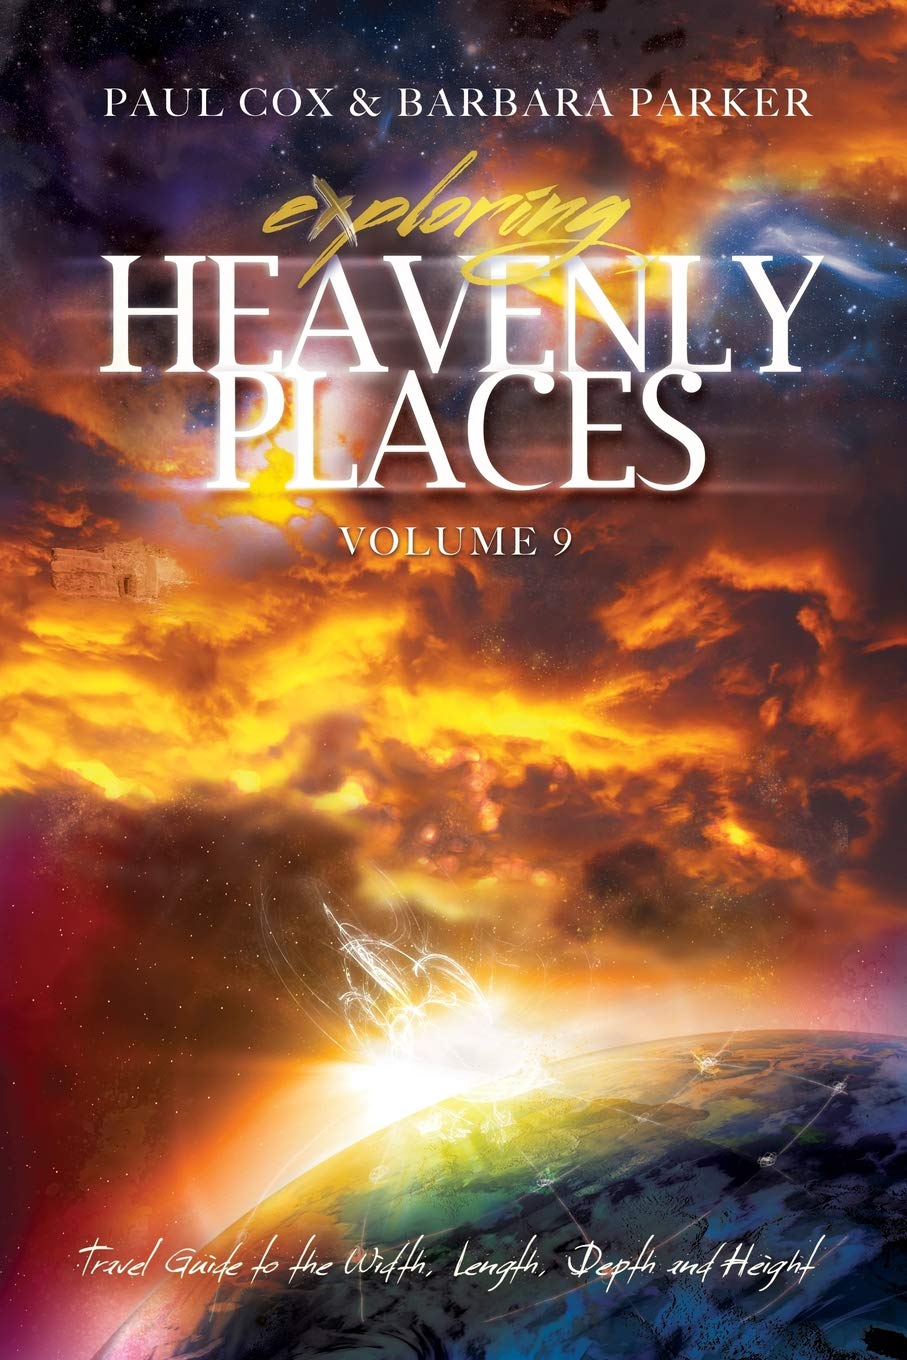 Exploring Heavenly Places - Volume 9 - Travel Guide to the Width, Length, Depth and Height pdf